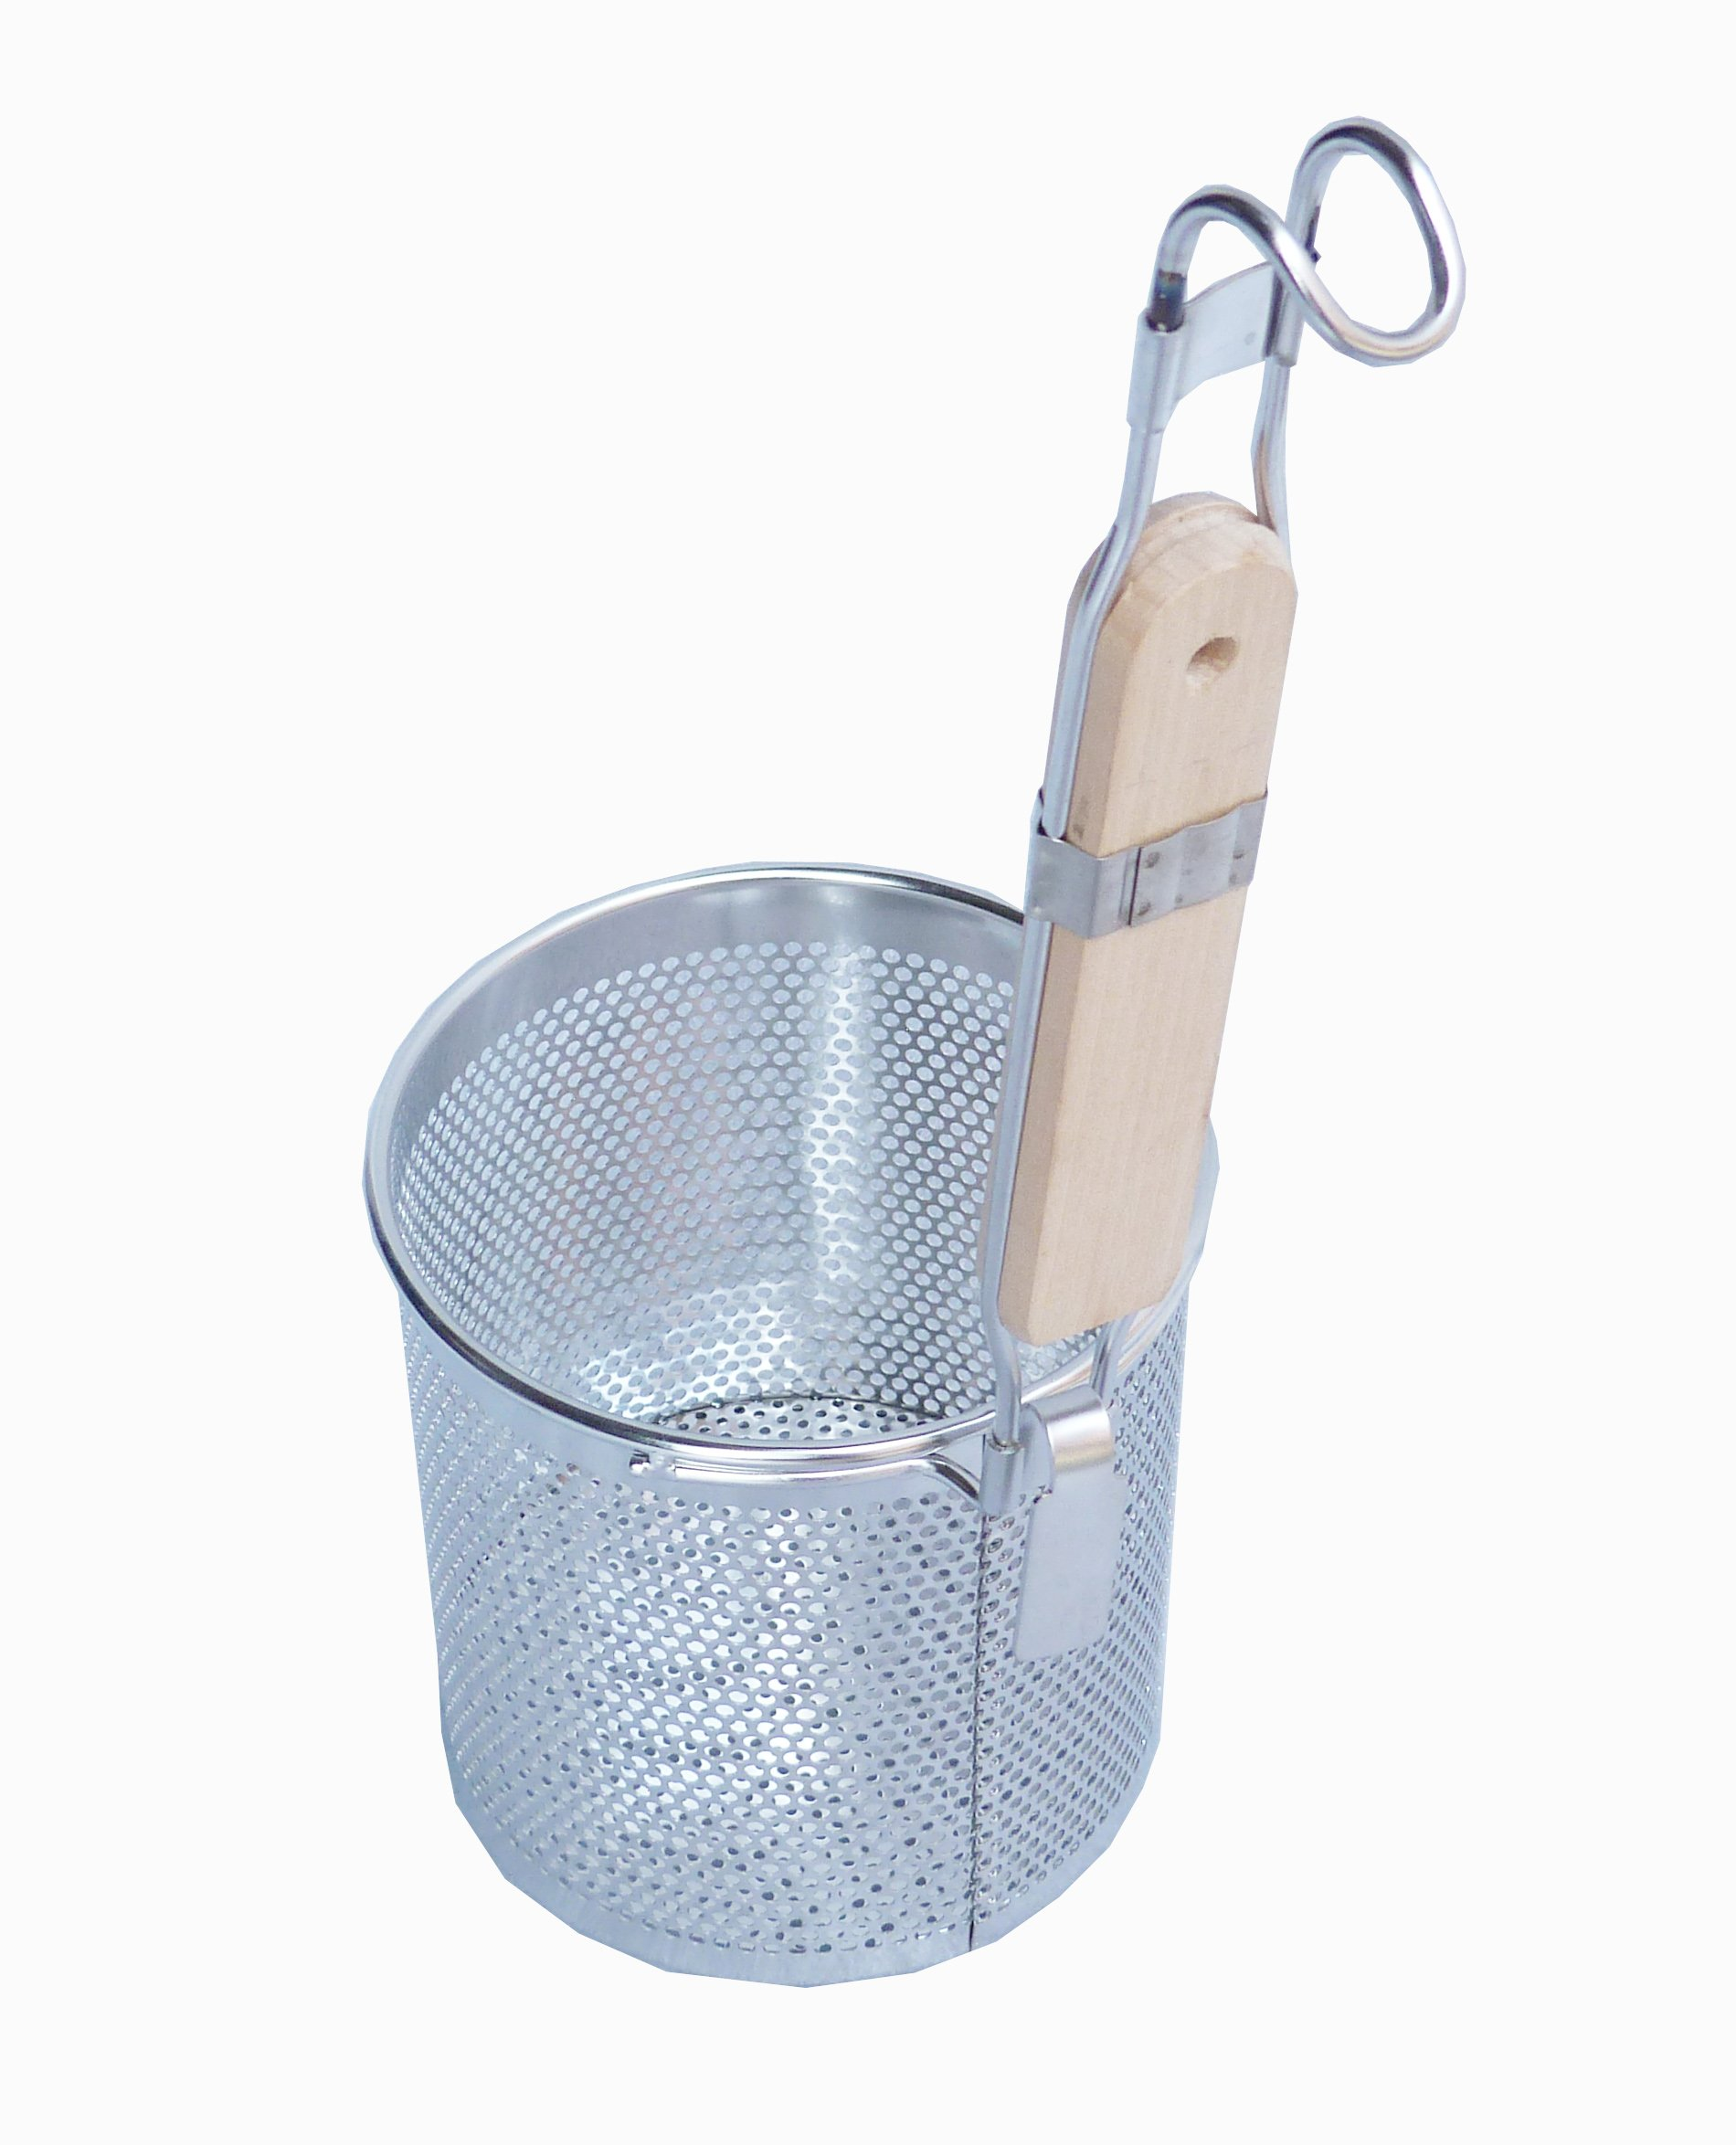 FixtureDisplays Set of 2 Pcs 5'' x 5 1/4'' Stainless Steel Pasta Strainer/Blanching Basket with Wood Handle 18017 18017!